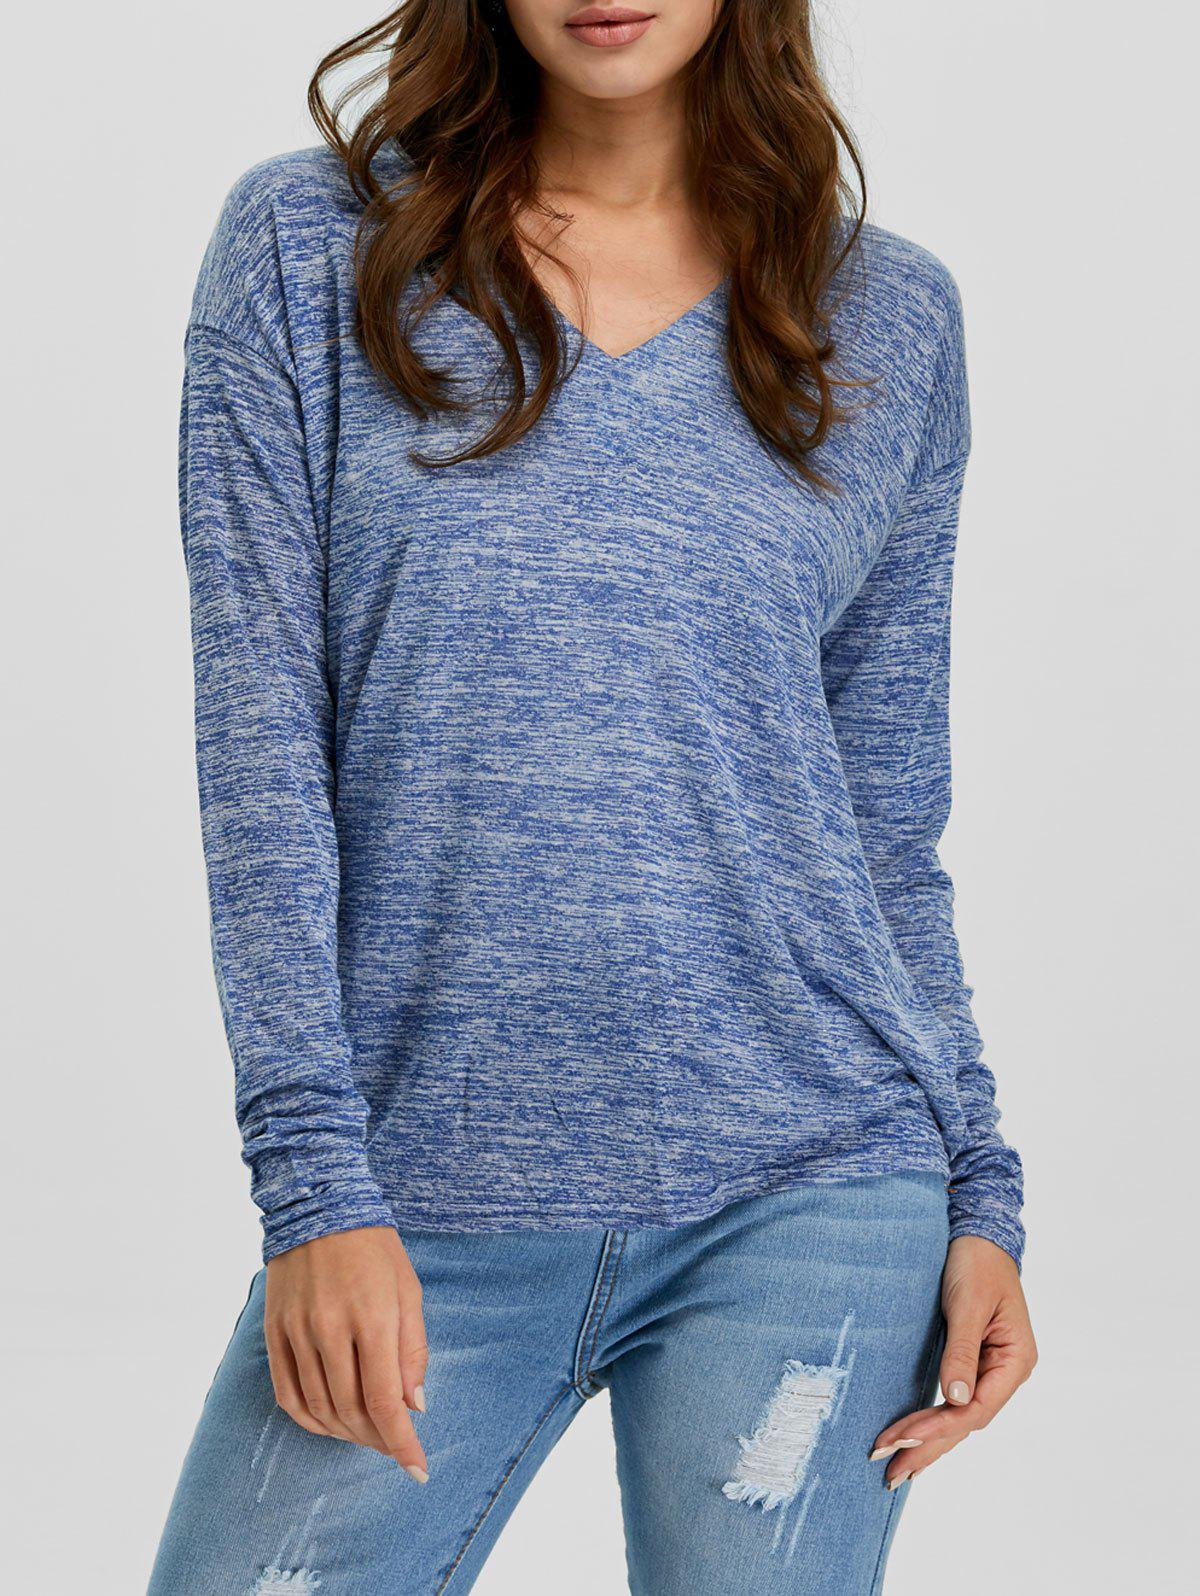 V-Neck Long Sleeve Knitted Tee - BLUE S